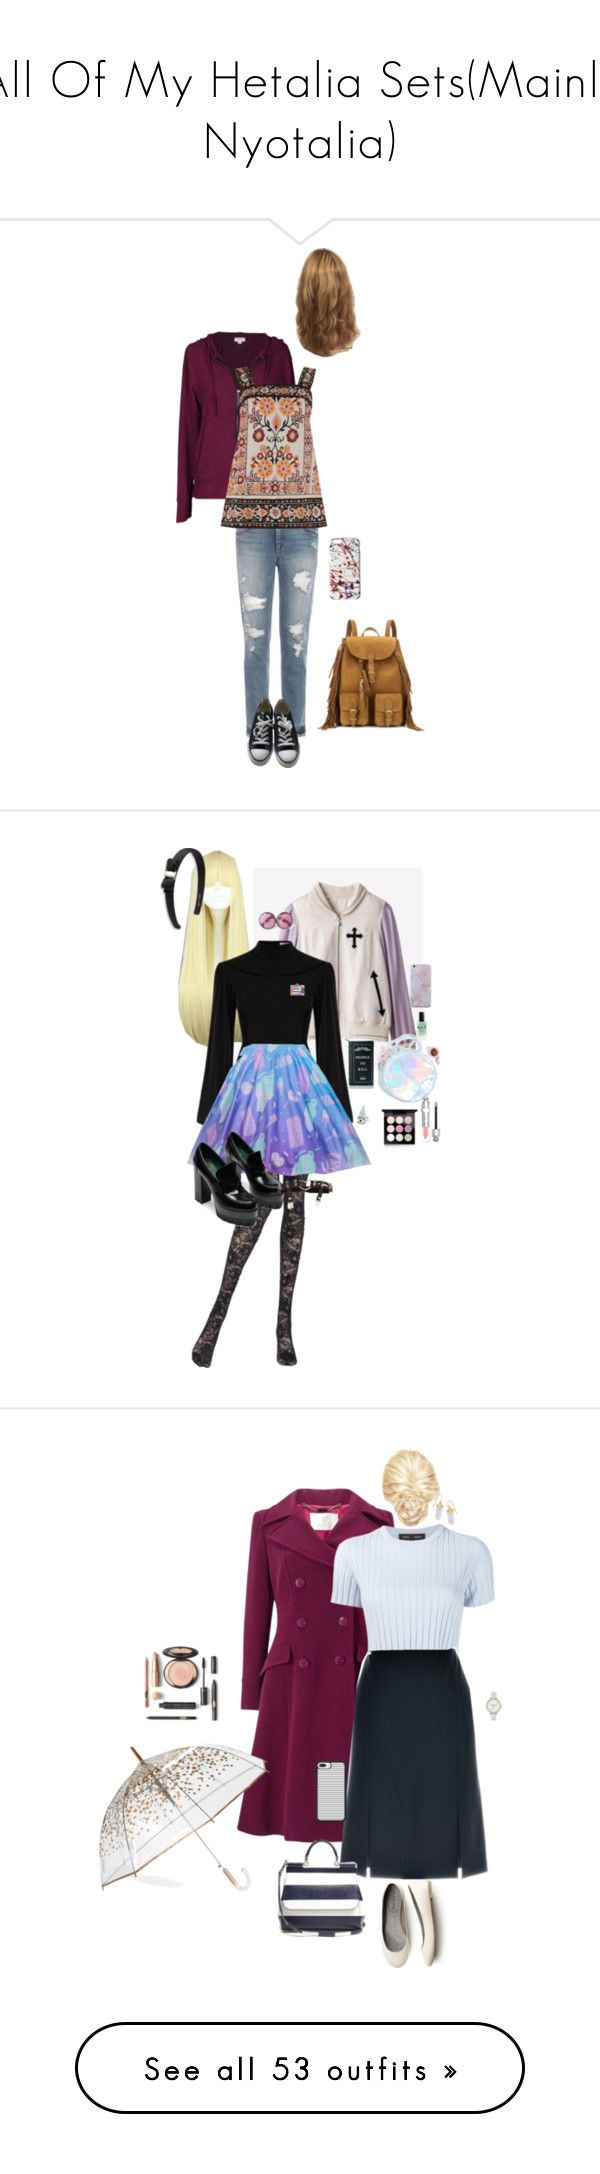 """""""All Of My Hetalia Sets(Mainly Nyotalia)"""" by shaebutter ❤ liked on Polyvore featuring Joe's Jeans, Converse, Velvet by Graham & Spencer, Warehouse, Yves Saint Laurent, Marc Jacobs, Pierre Mantoux, Salvatore Ferragamo, Killstar and Lauren B. Beauty"""